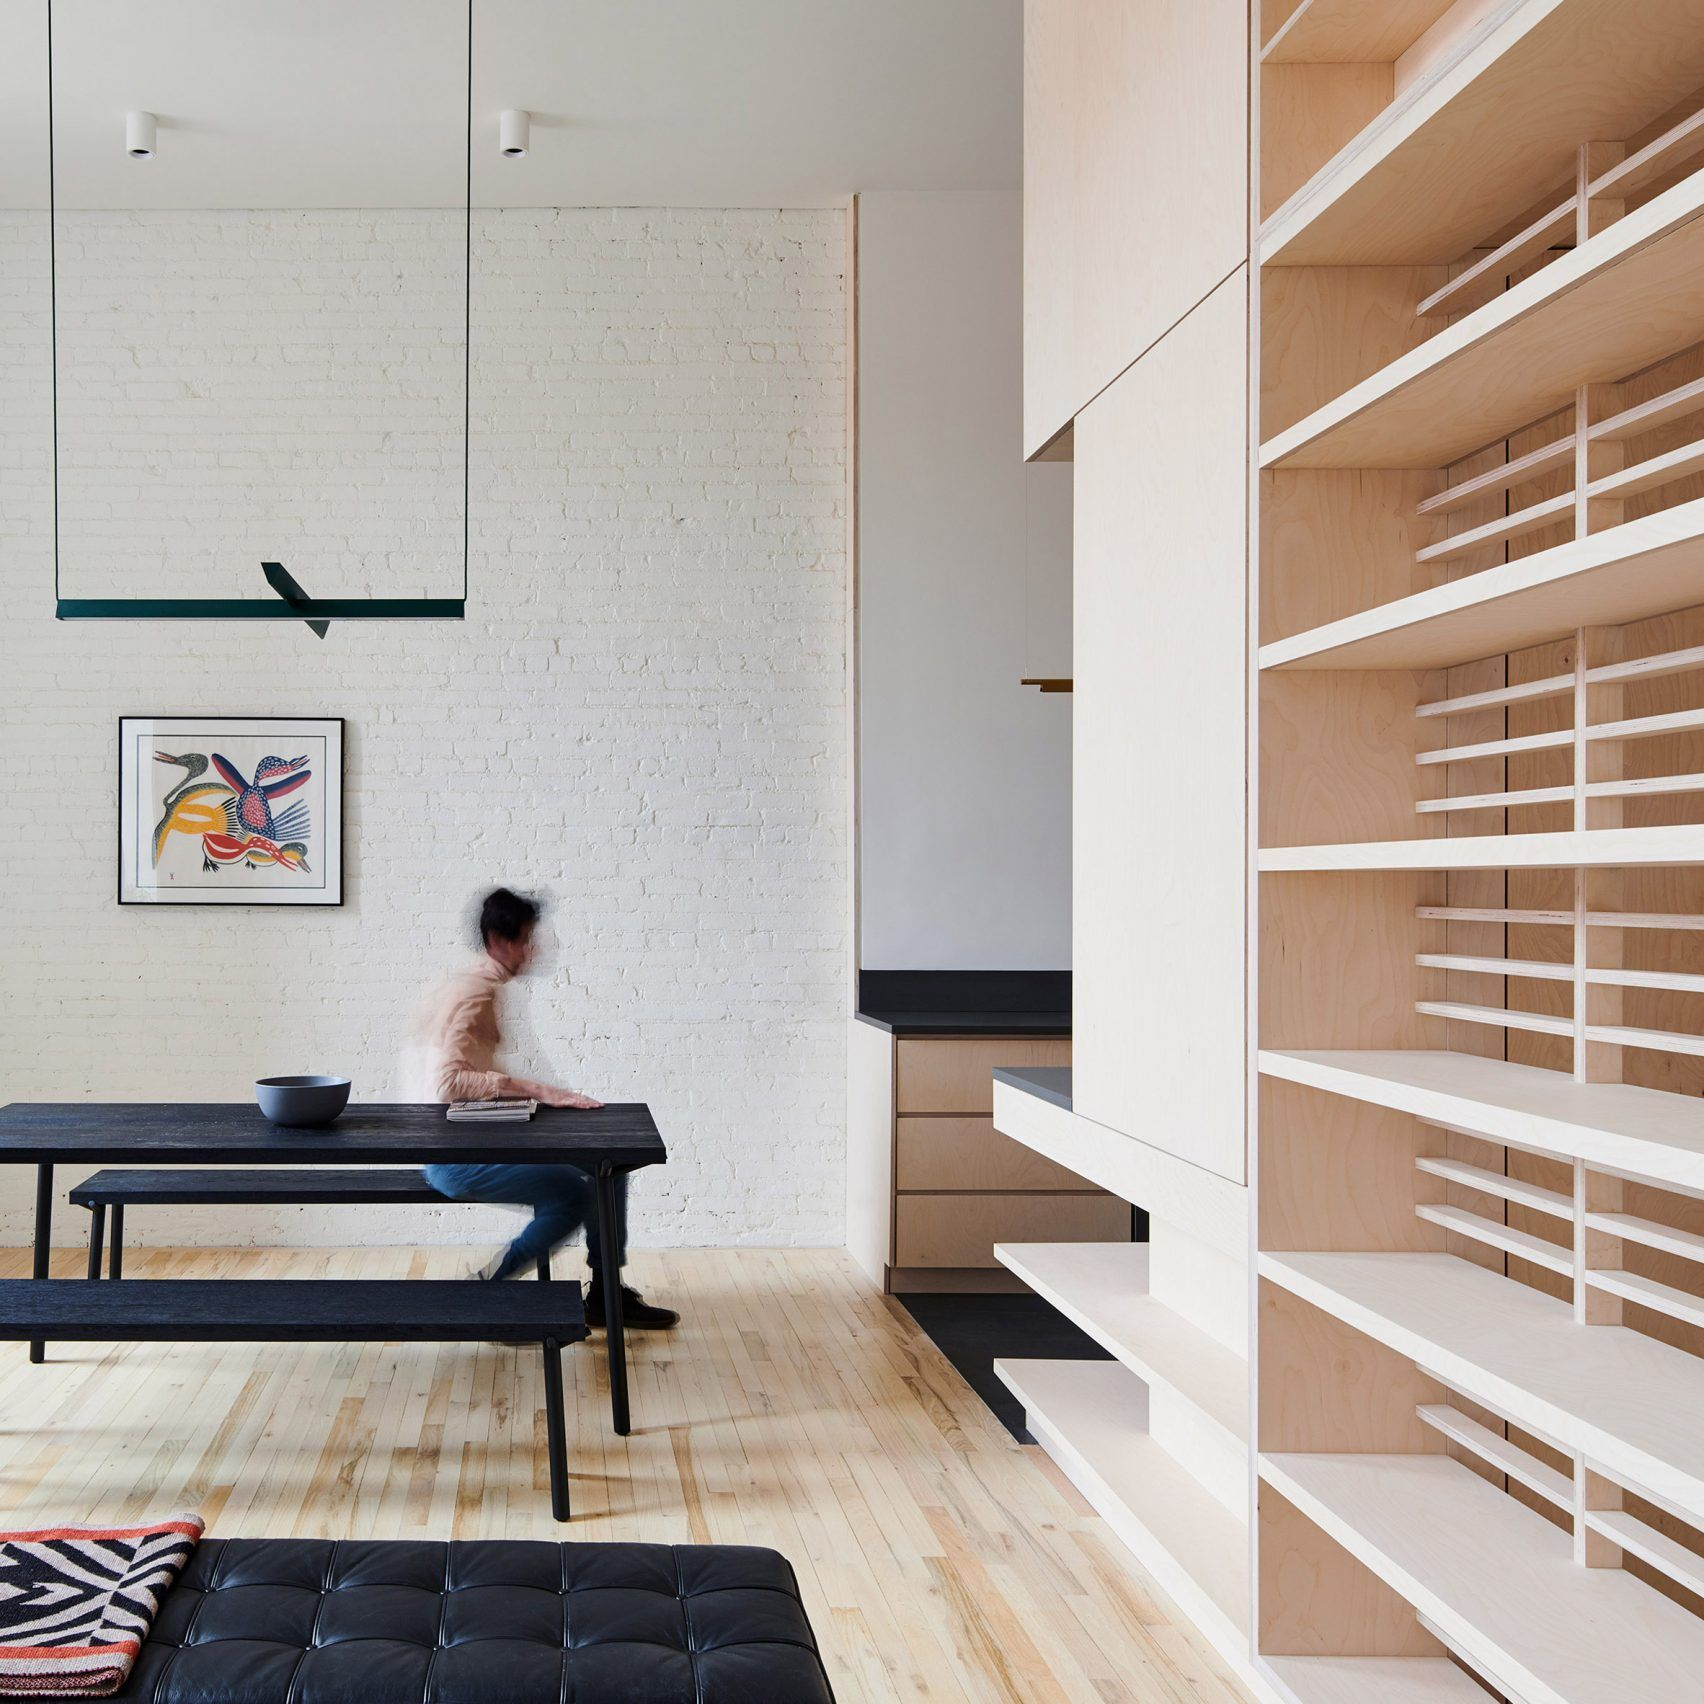 Baltic Birch Storage System Organises Brooklyn Apartment